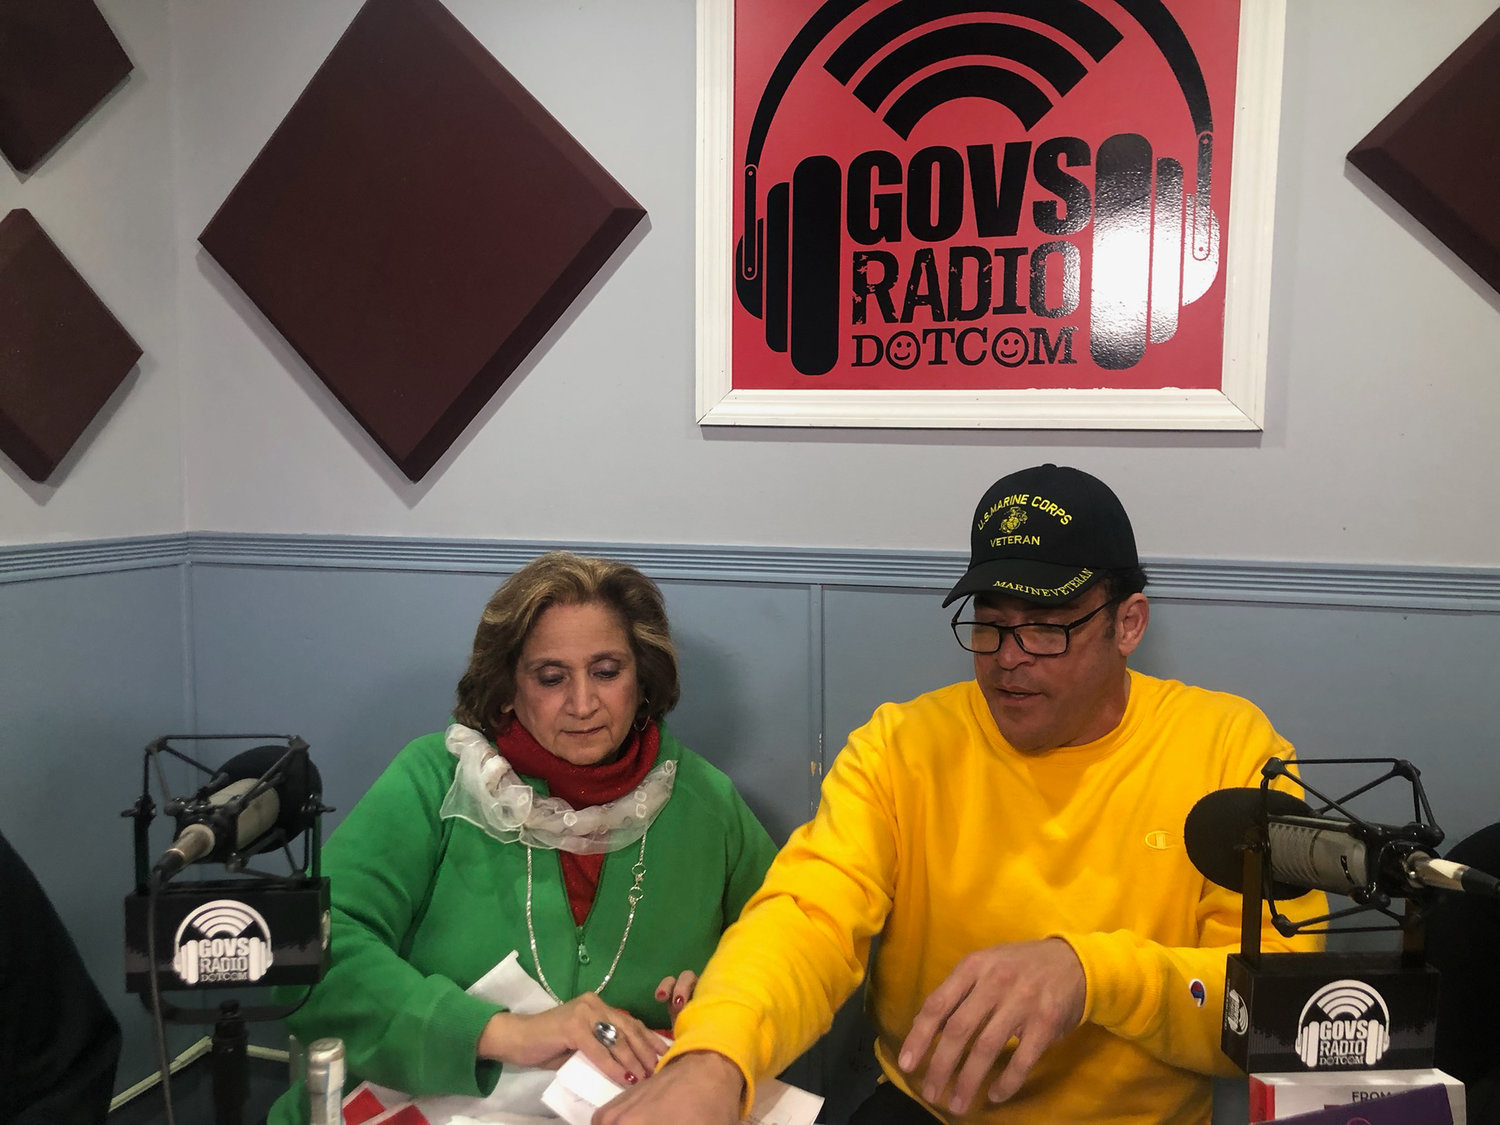 Long Island Breakfast Club Show co-hosts Valentina Janek and Gregg Cajuste air their talk show every Monday and Thursday.